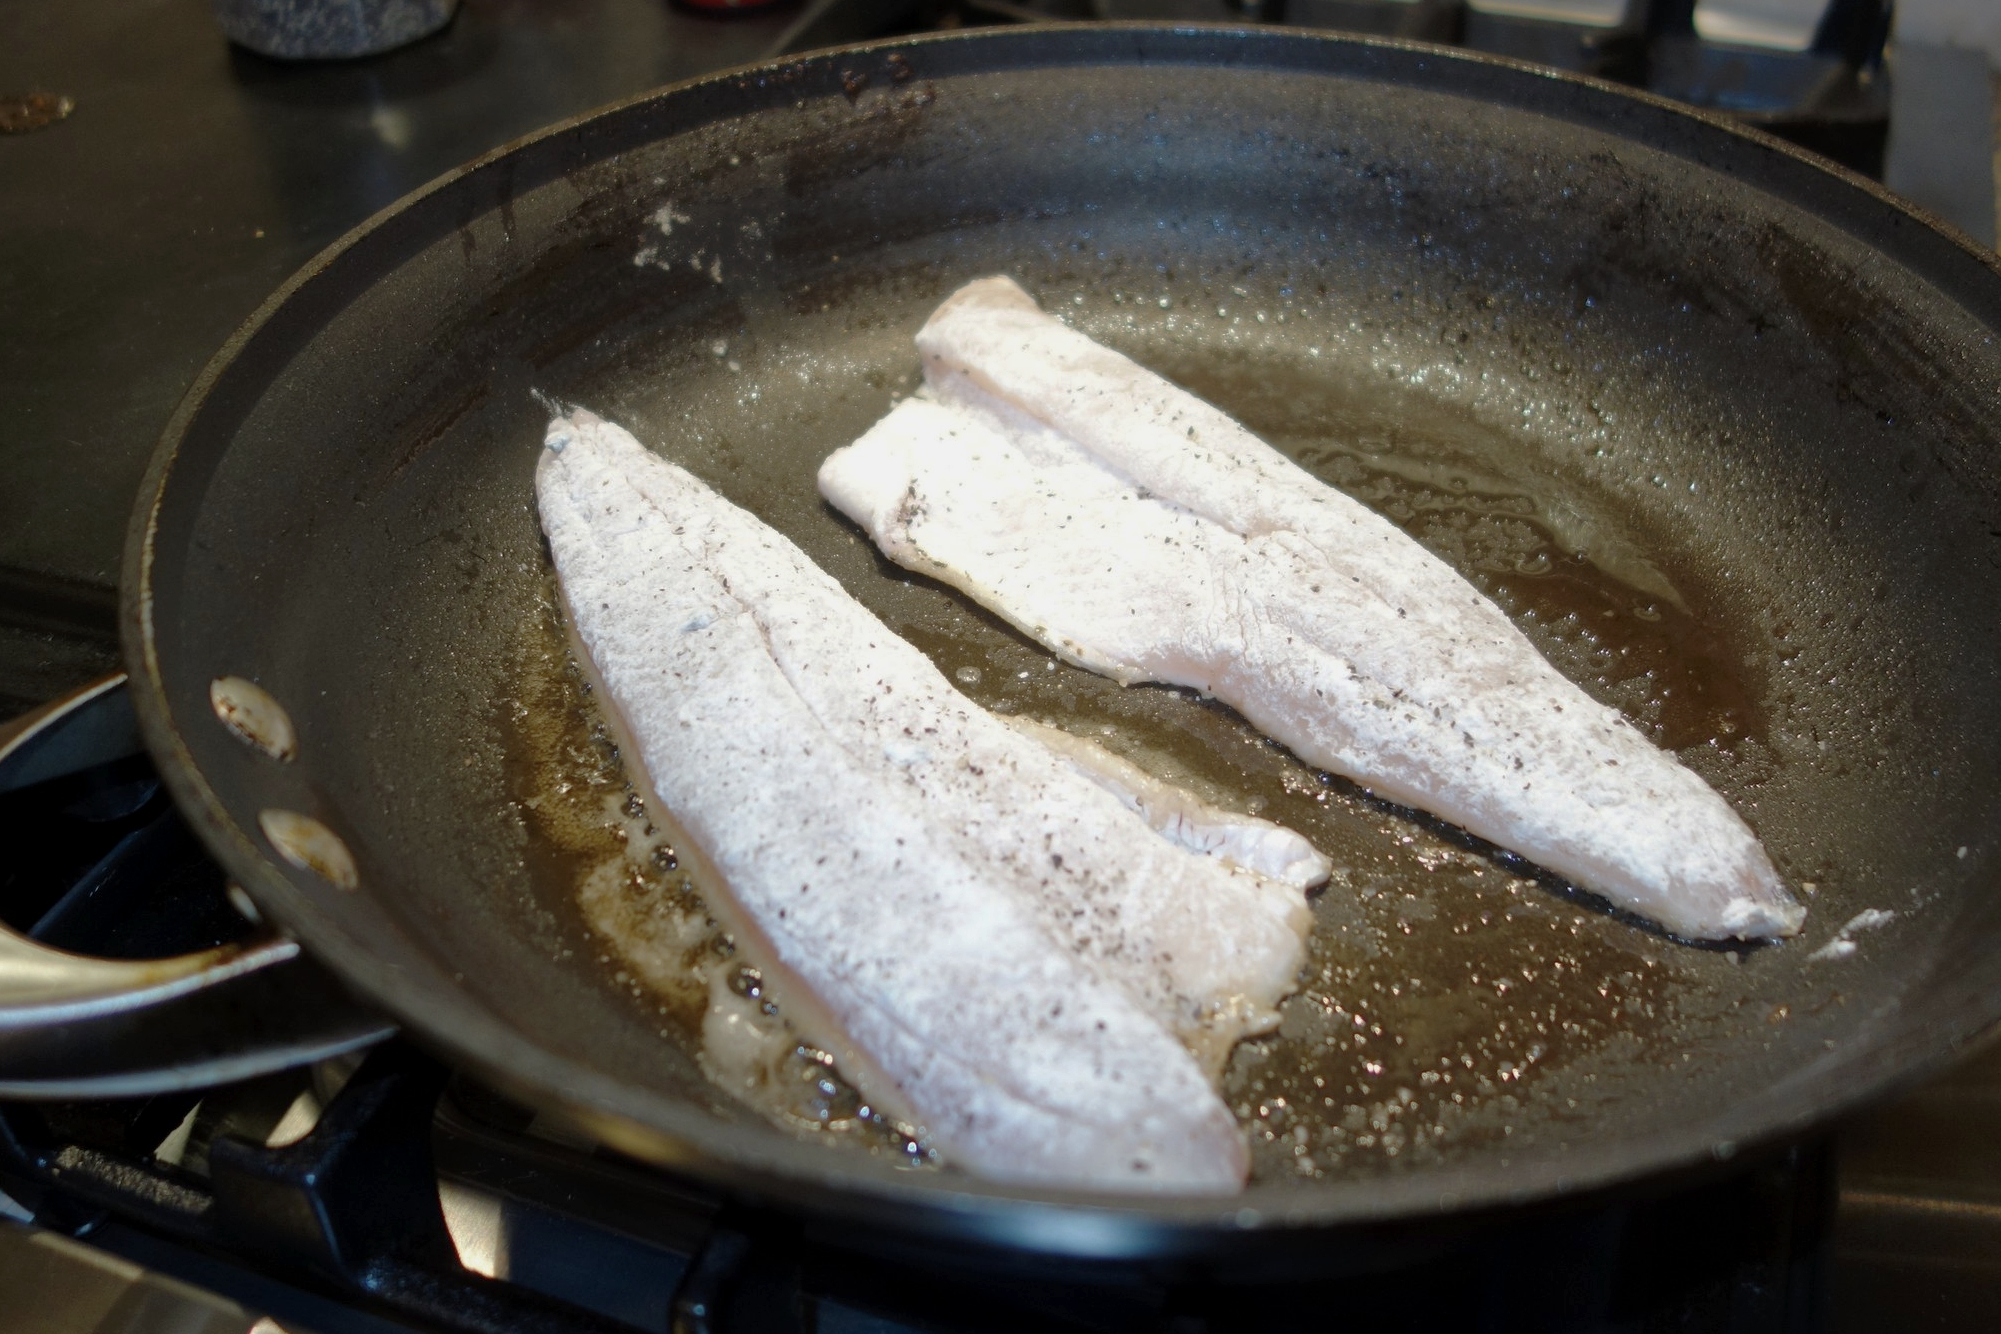 Cook the fish.  Wipe the pan out with paper towels and pour the clarified brown butter back in. Turn to medium high heat. When the butter is shimmering, add the fillets with skin facing down. Immediately reduce the heat to medium low.